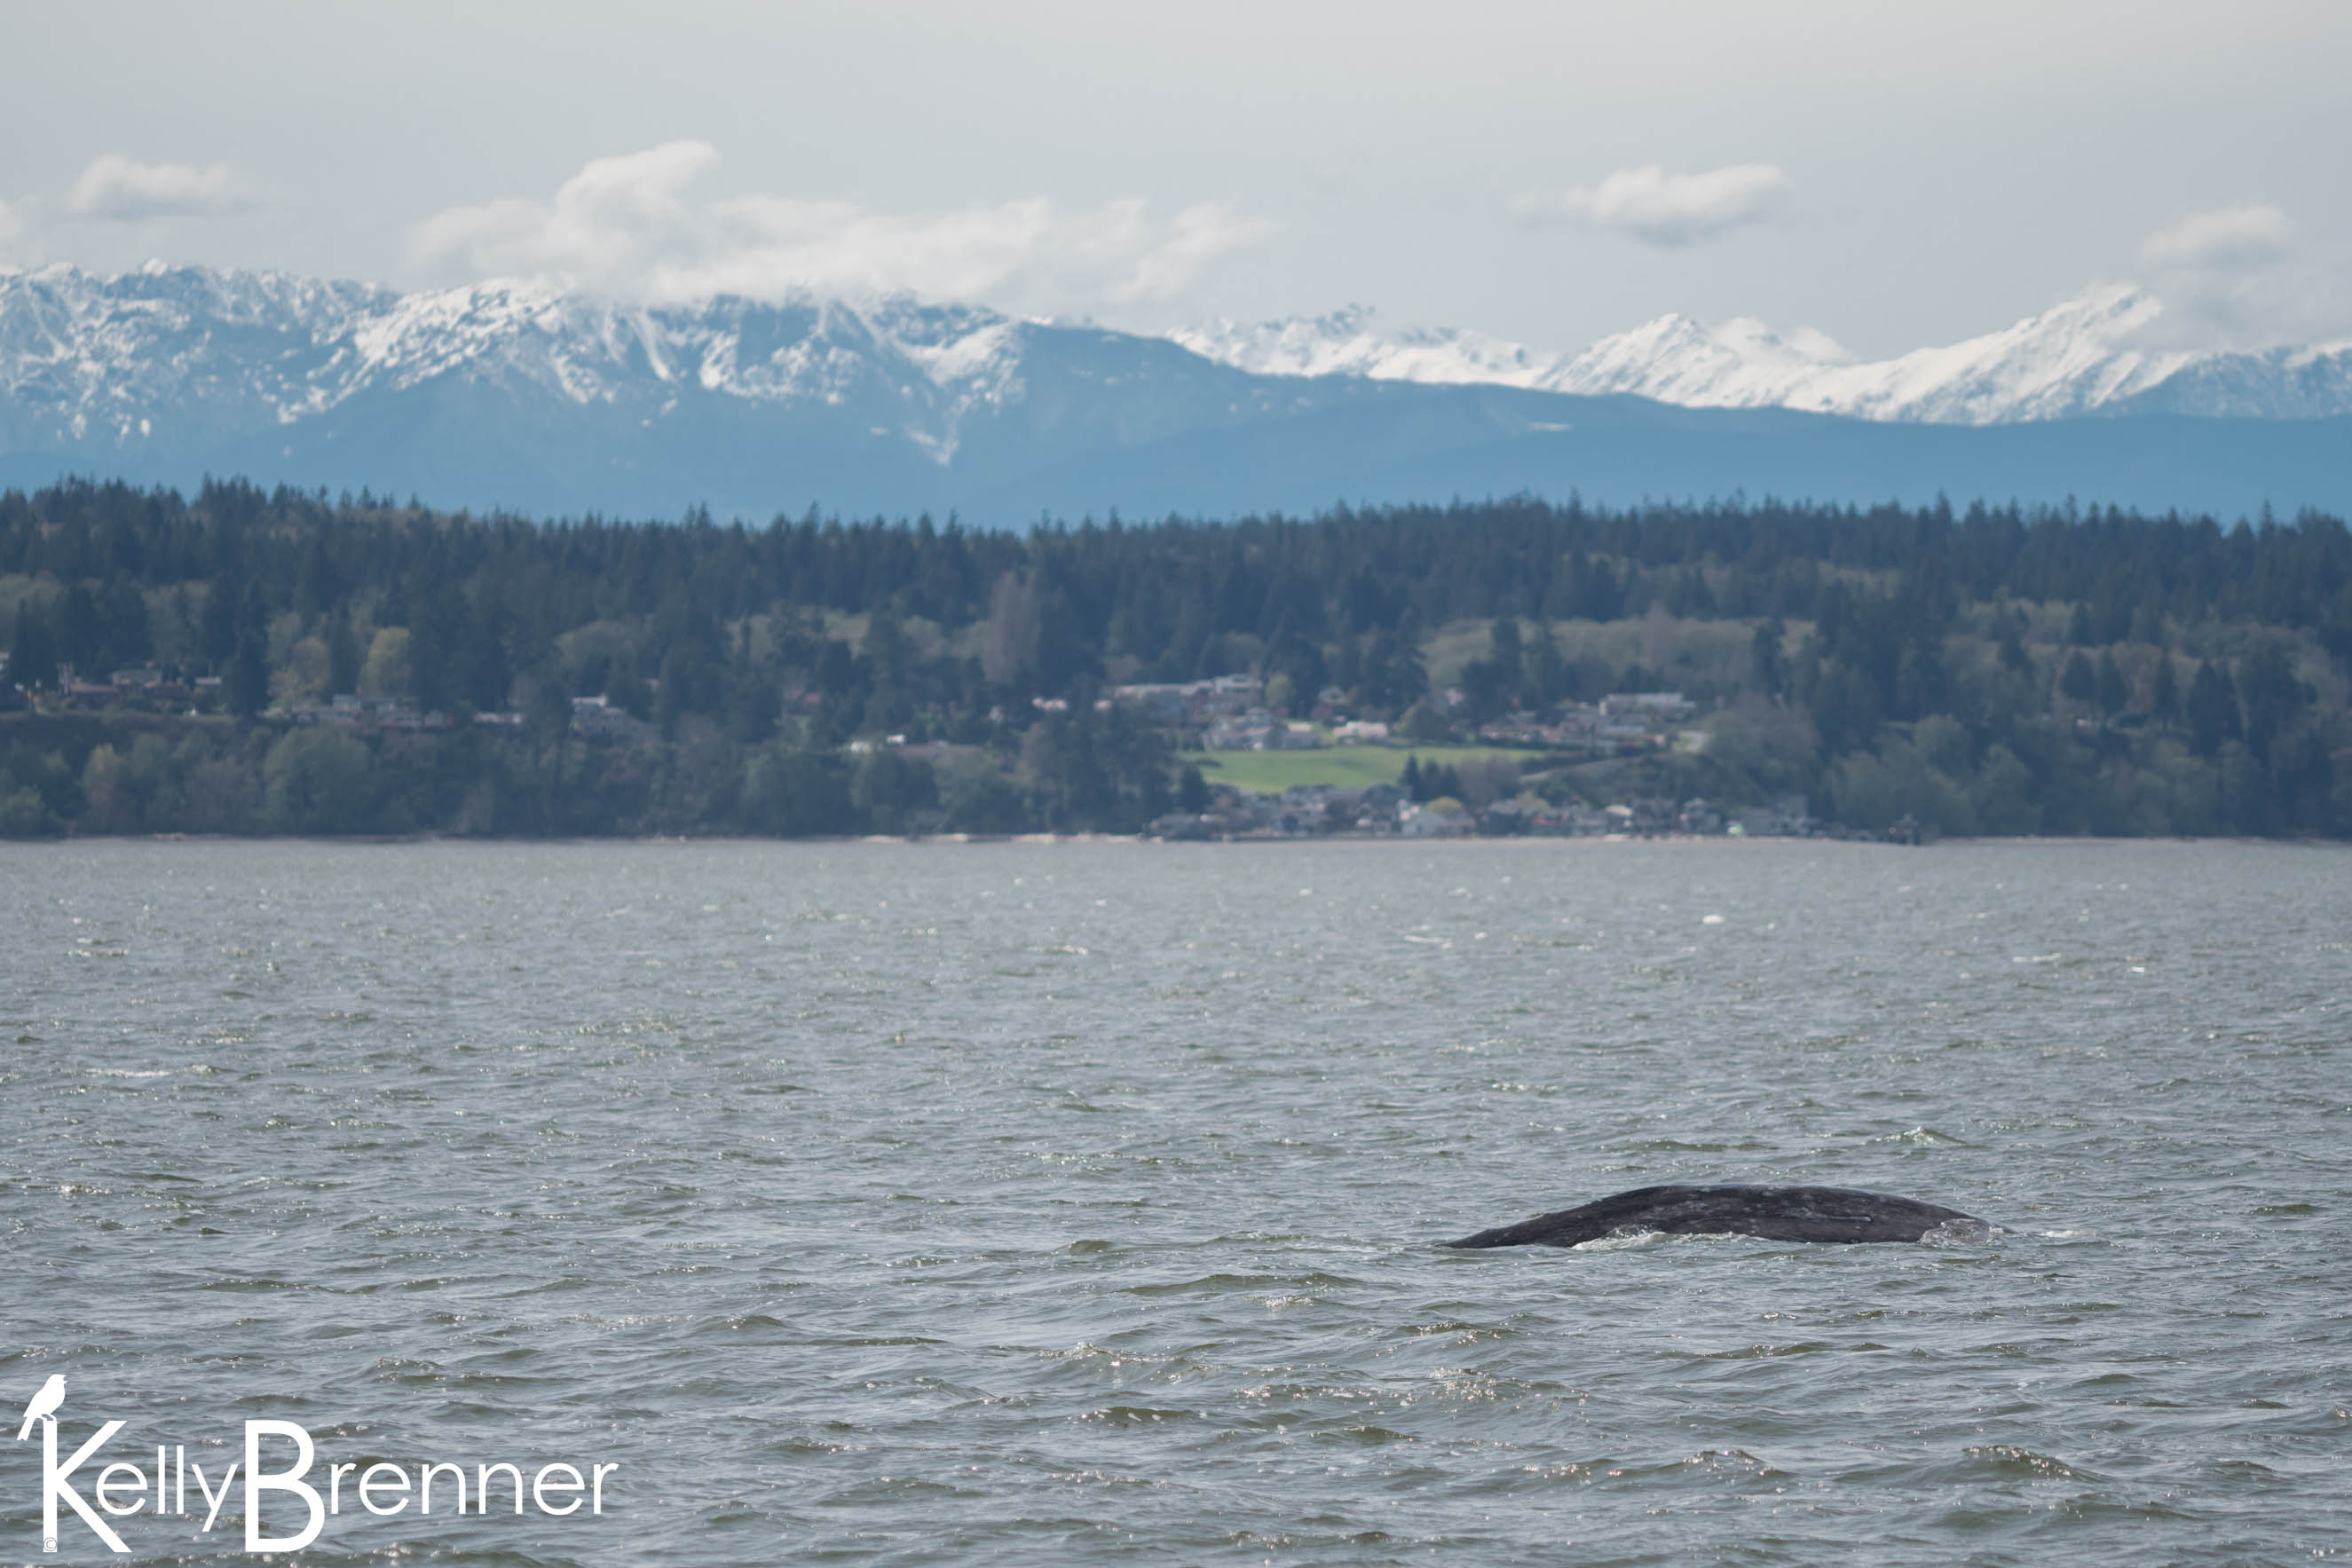 Field Journal: Following Gray Whales